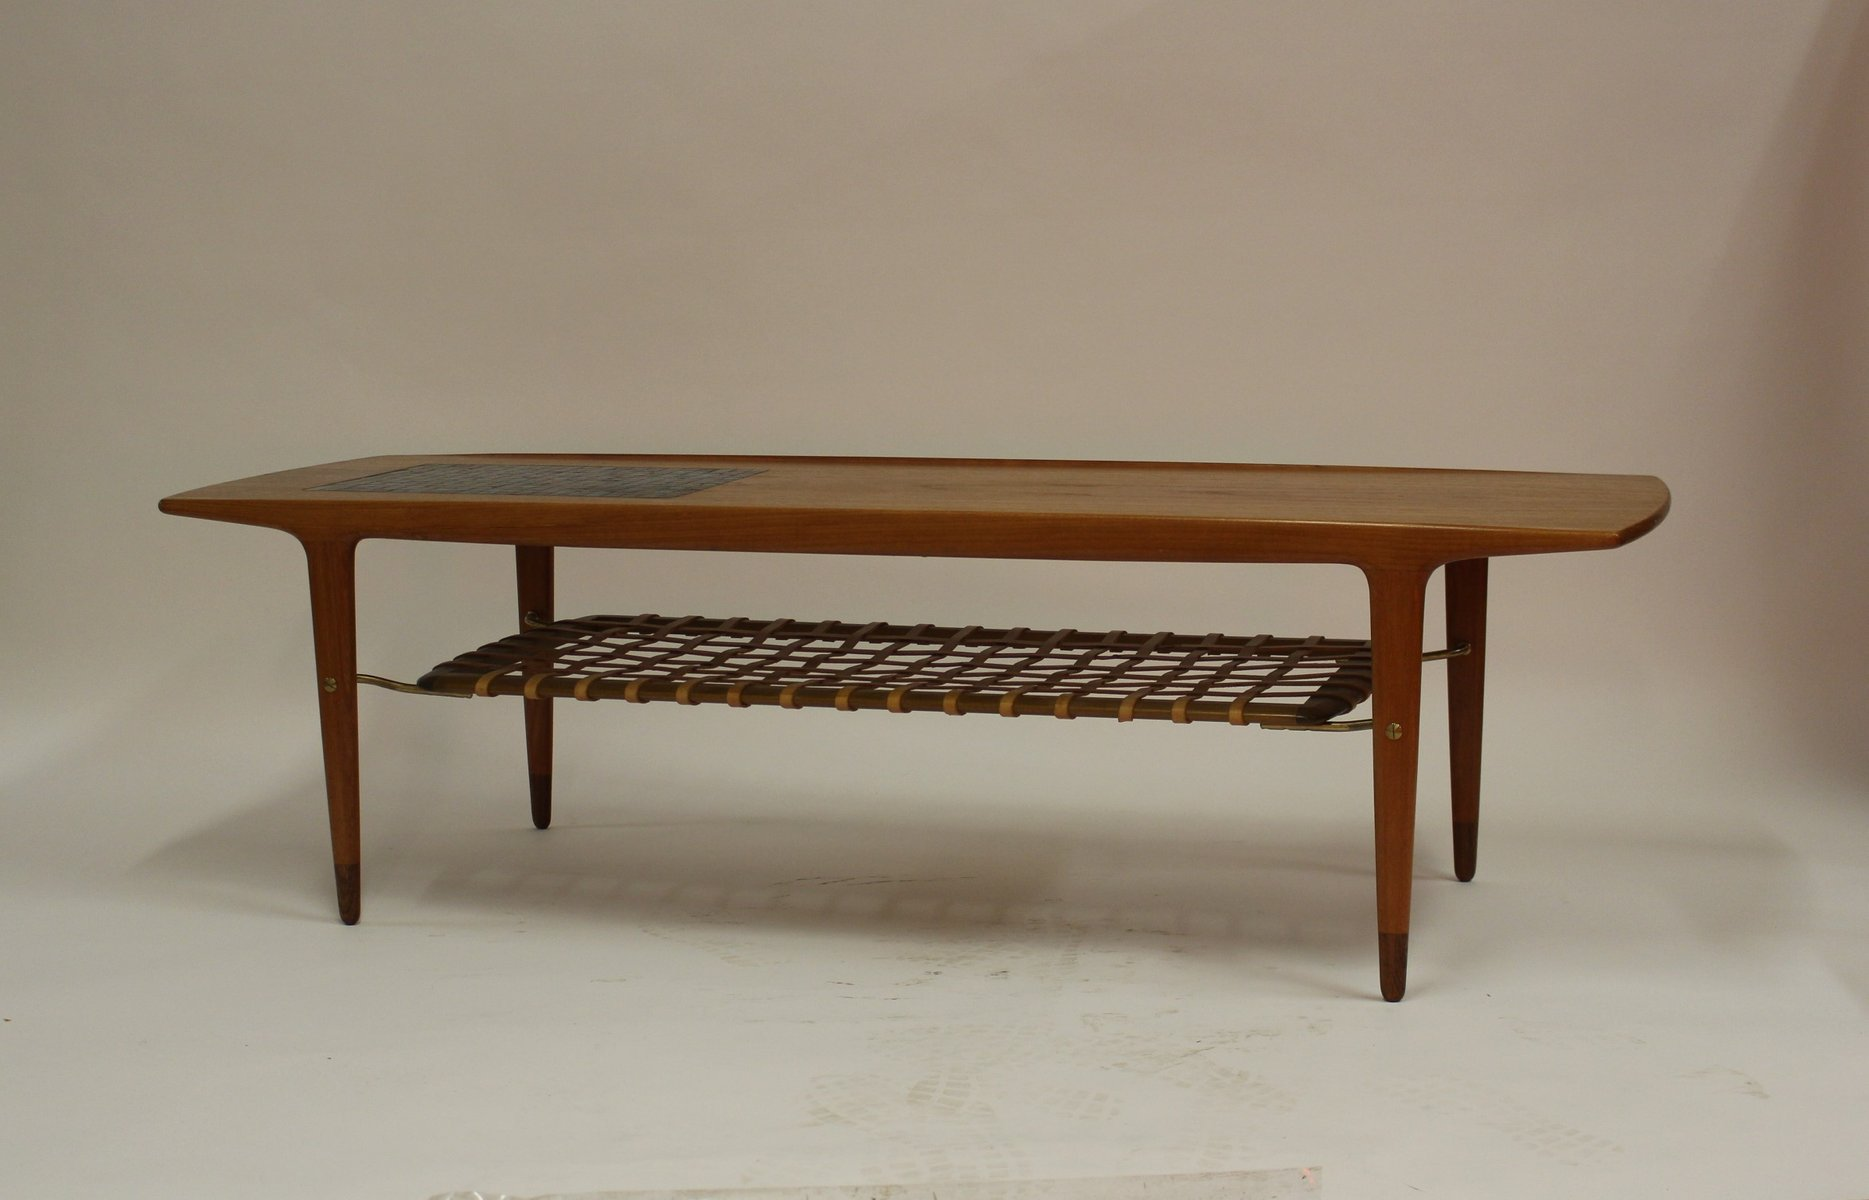 Vintage Danish Teak Coffee Table with Ceramic Tiles and Leather